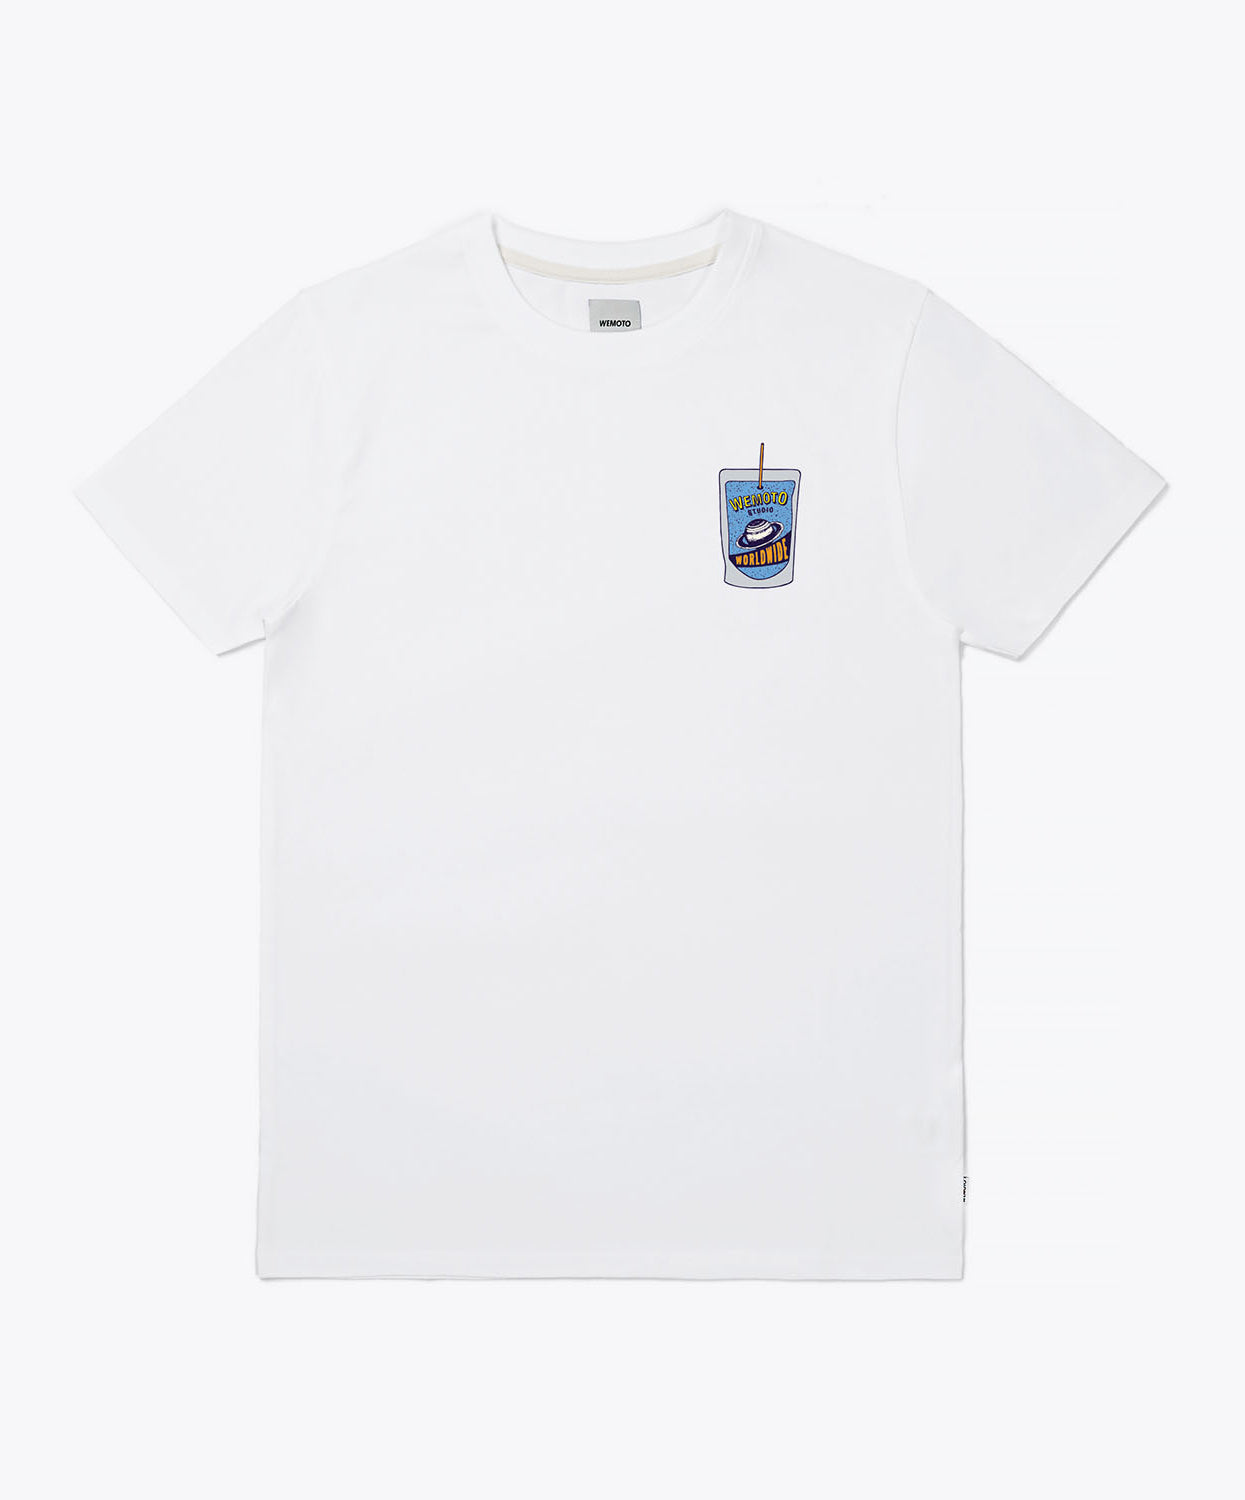 Drink Tee White T-Shirt